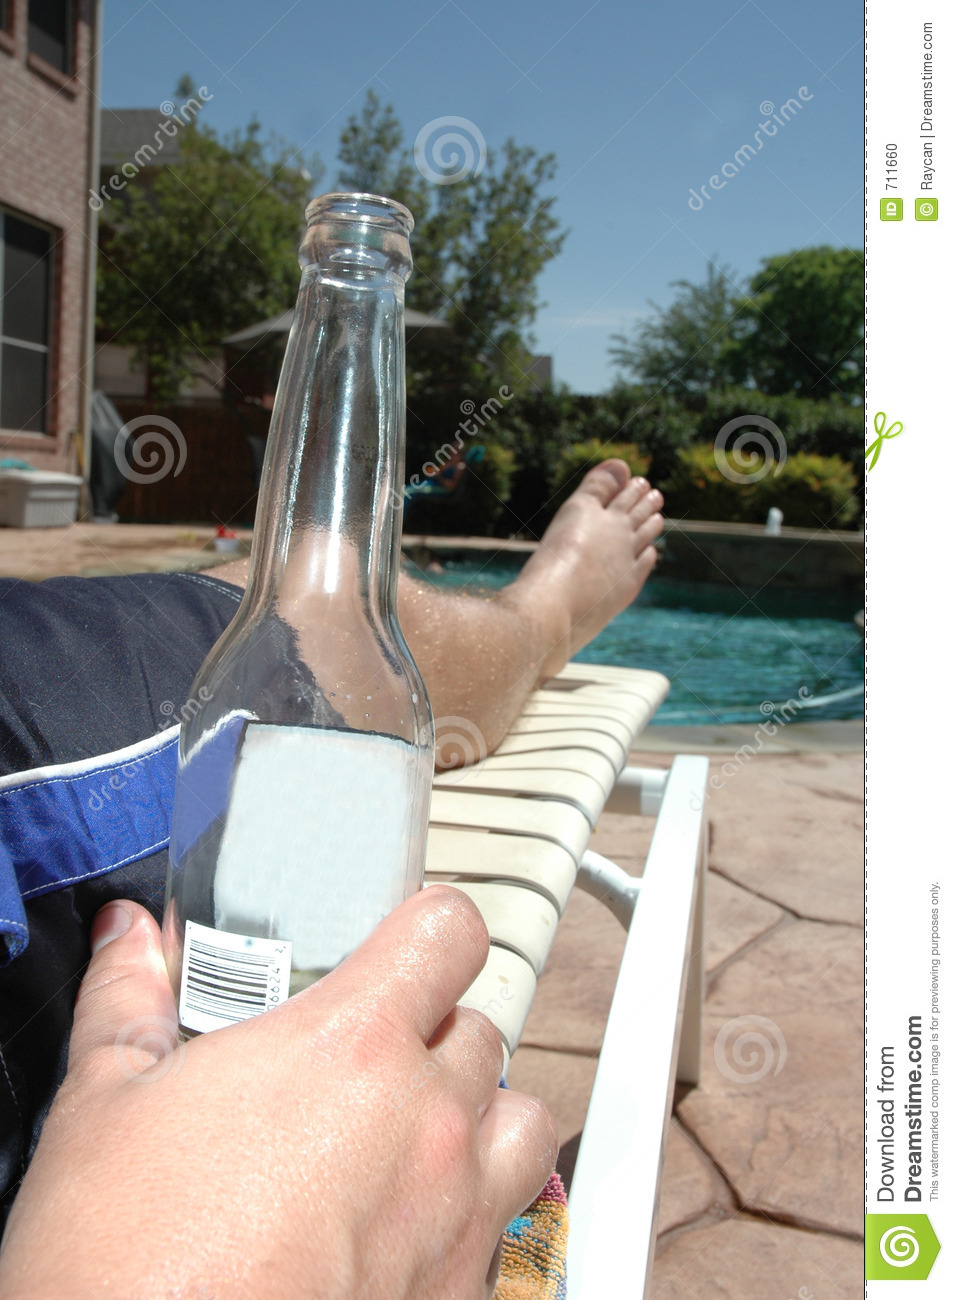 Cool Beer by the Pool stock photo Image of backyard